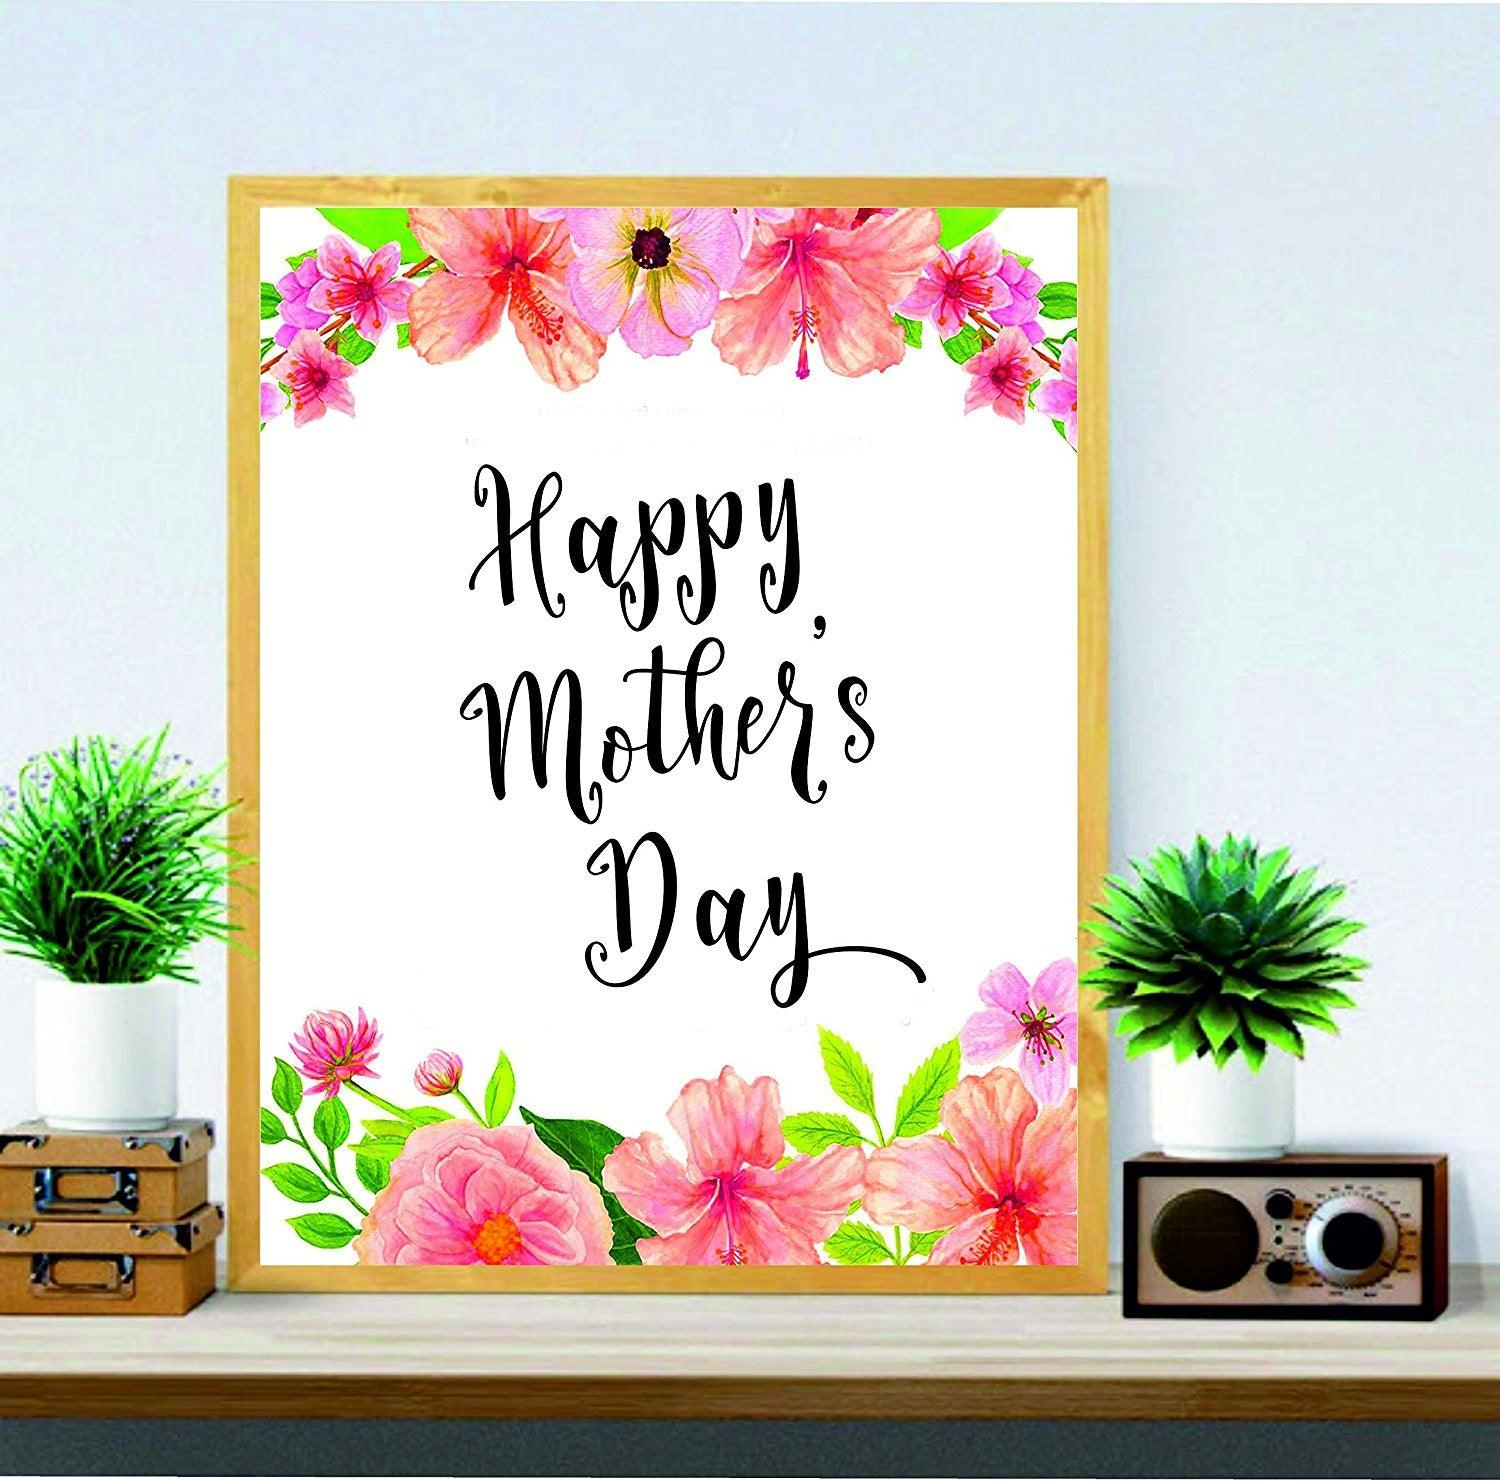 Mother's Day Printable - Happy Mother's Day - Mums Gift - Mother's Day Art - Digital Print - Wall Art Printable - Gifts for Mom - Mother's Day Decor - BOSTON CREATIVE COMPANY